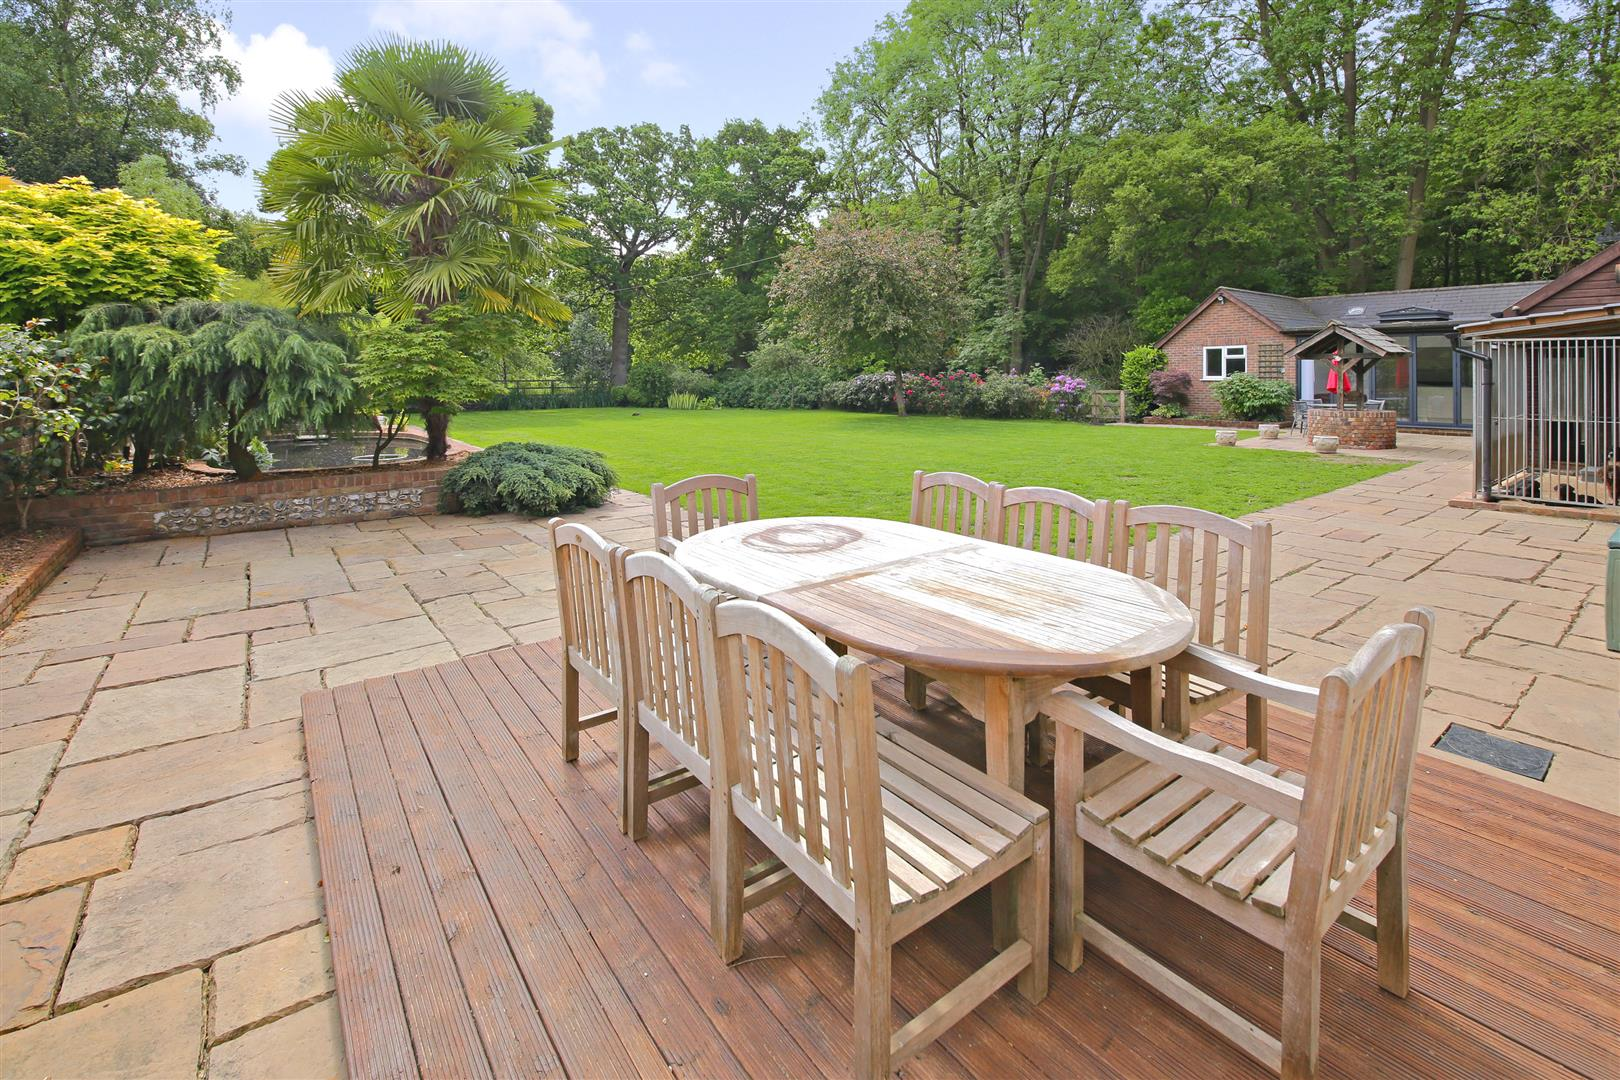 3 bed for sale in Station Road, Bricket Wood - (Property Image 13)